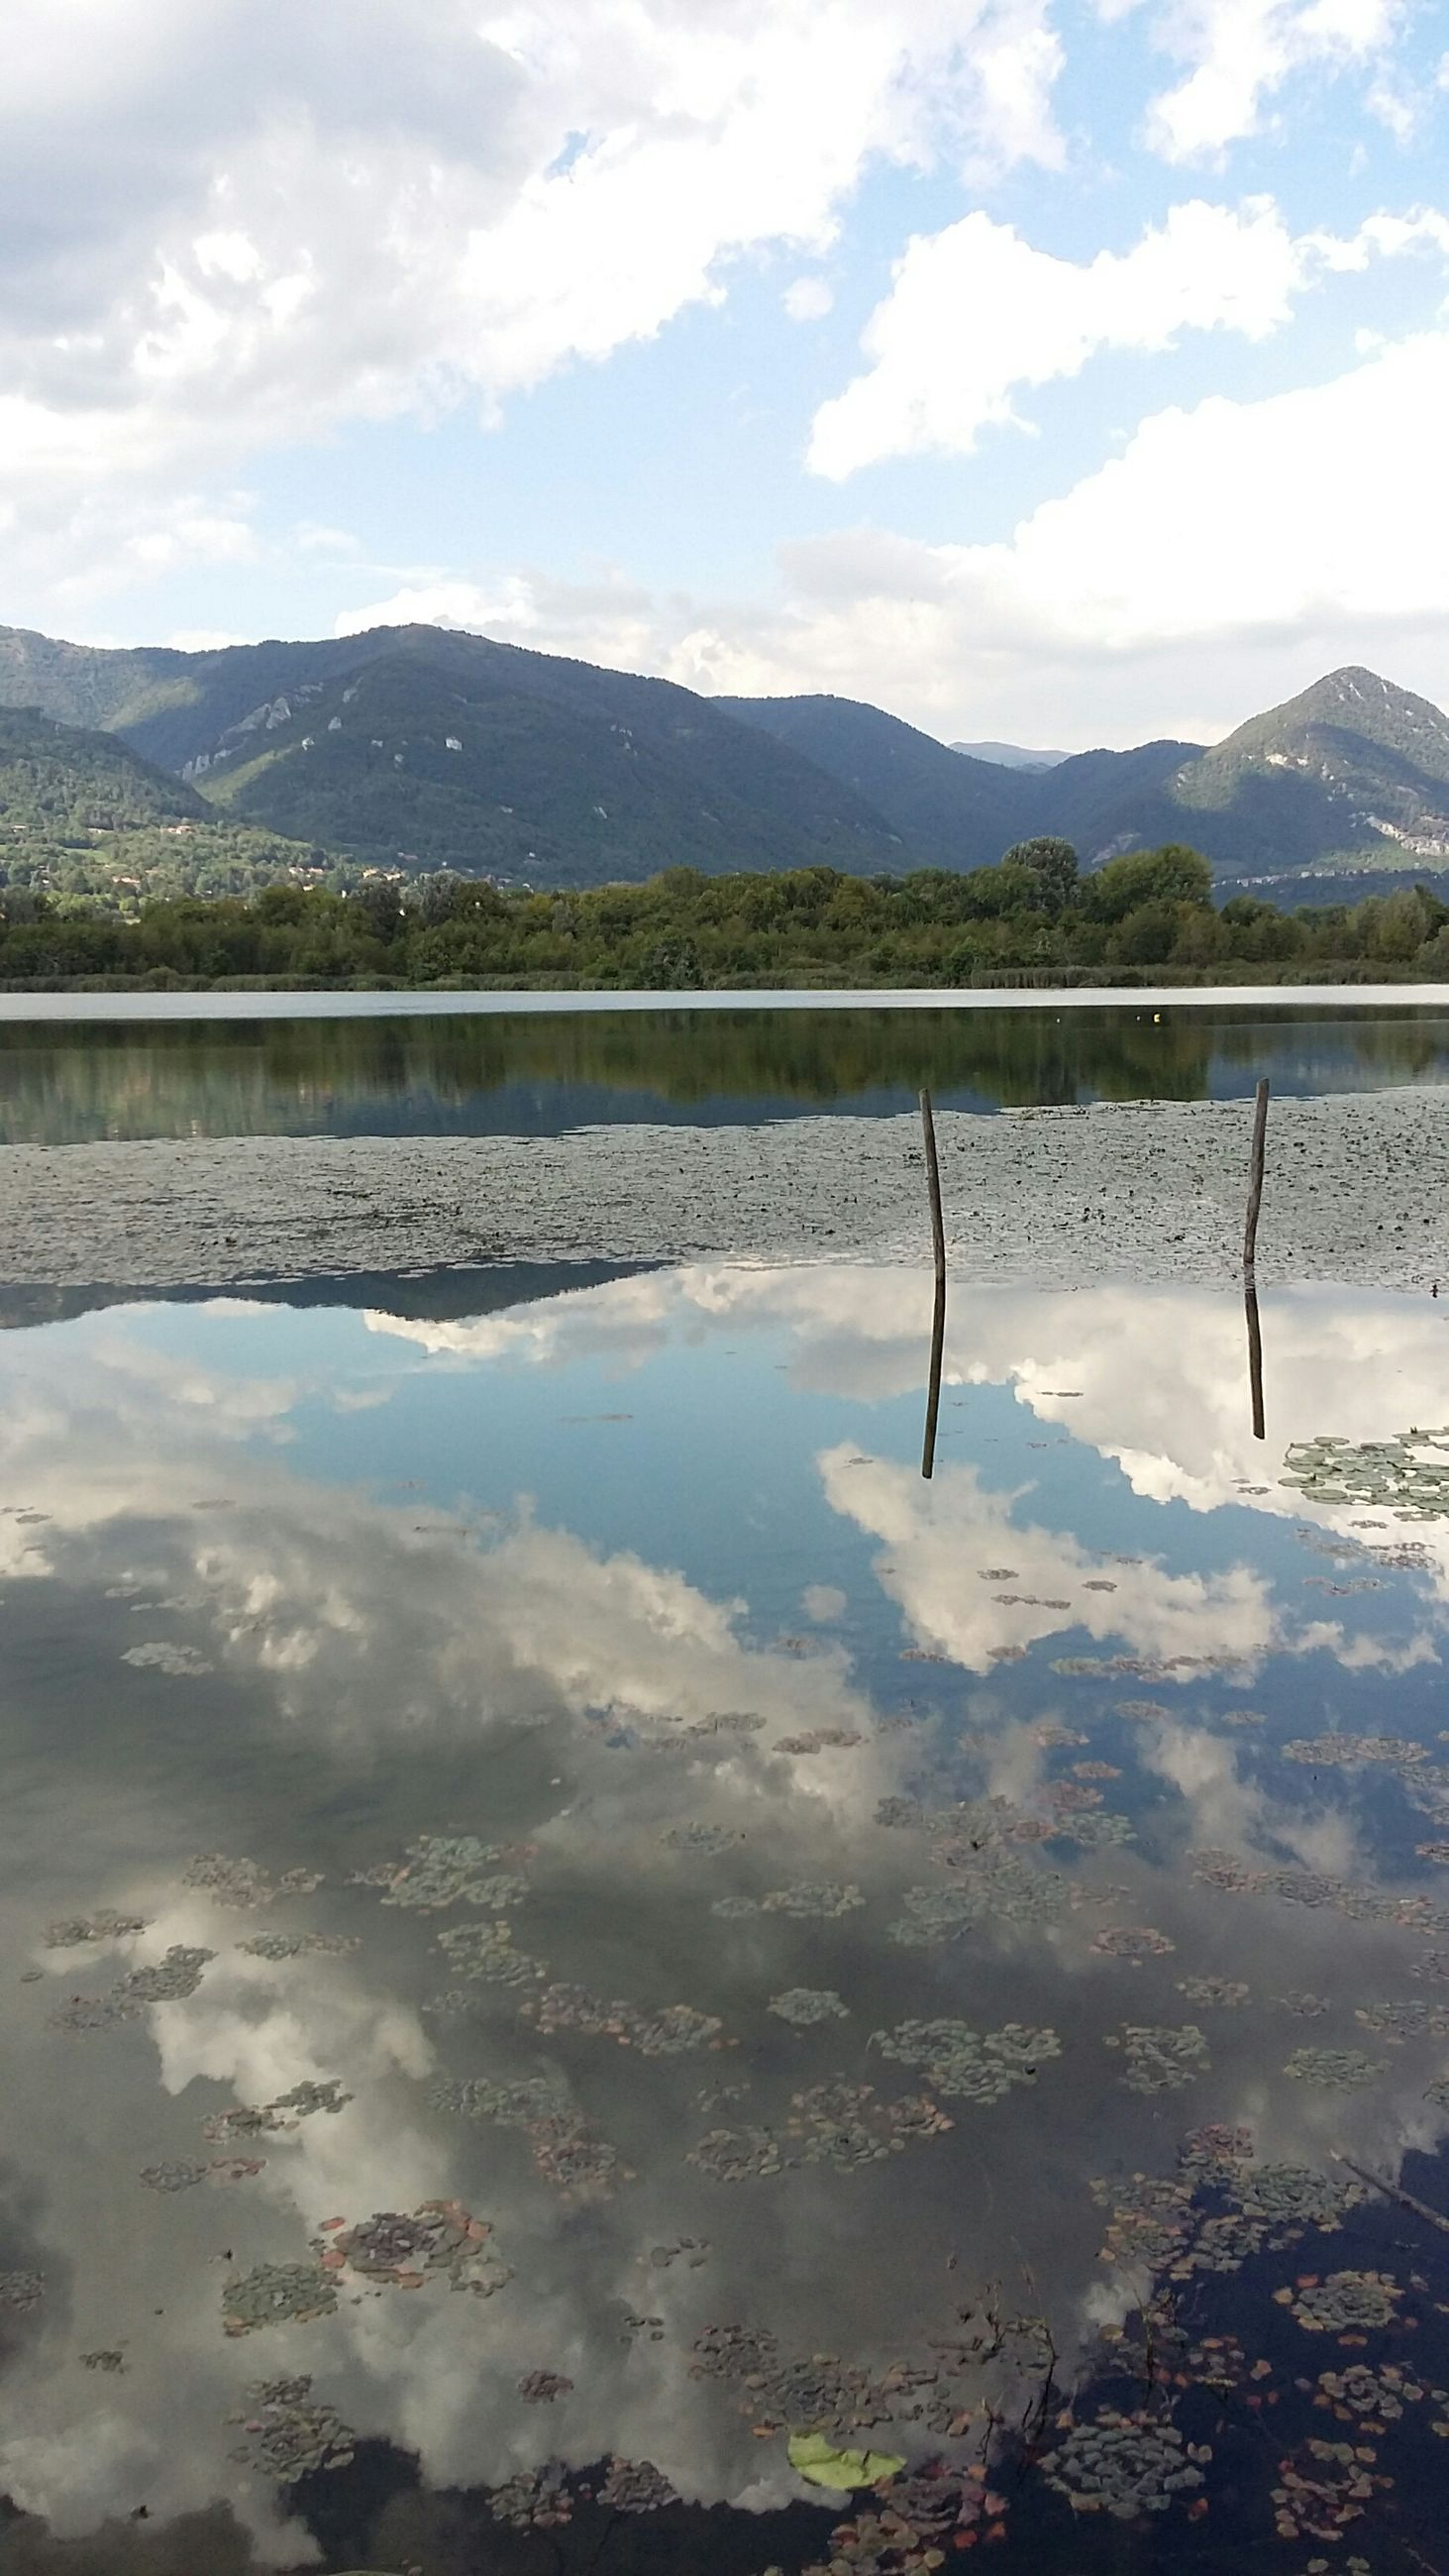 mountain, mountain range, water, lake, sky, tranquil scene, tranquility, scenics, reflection, beauty in nature, cloud - sky, nature, landscape, cloud, non-urban scene, river, idyllic, day, outdoors, cloudy